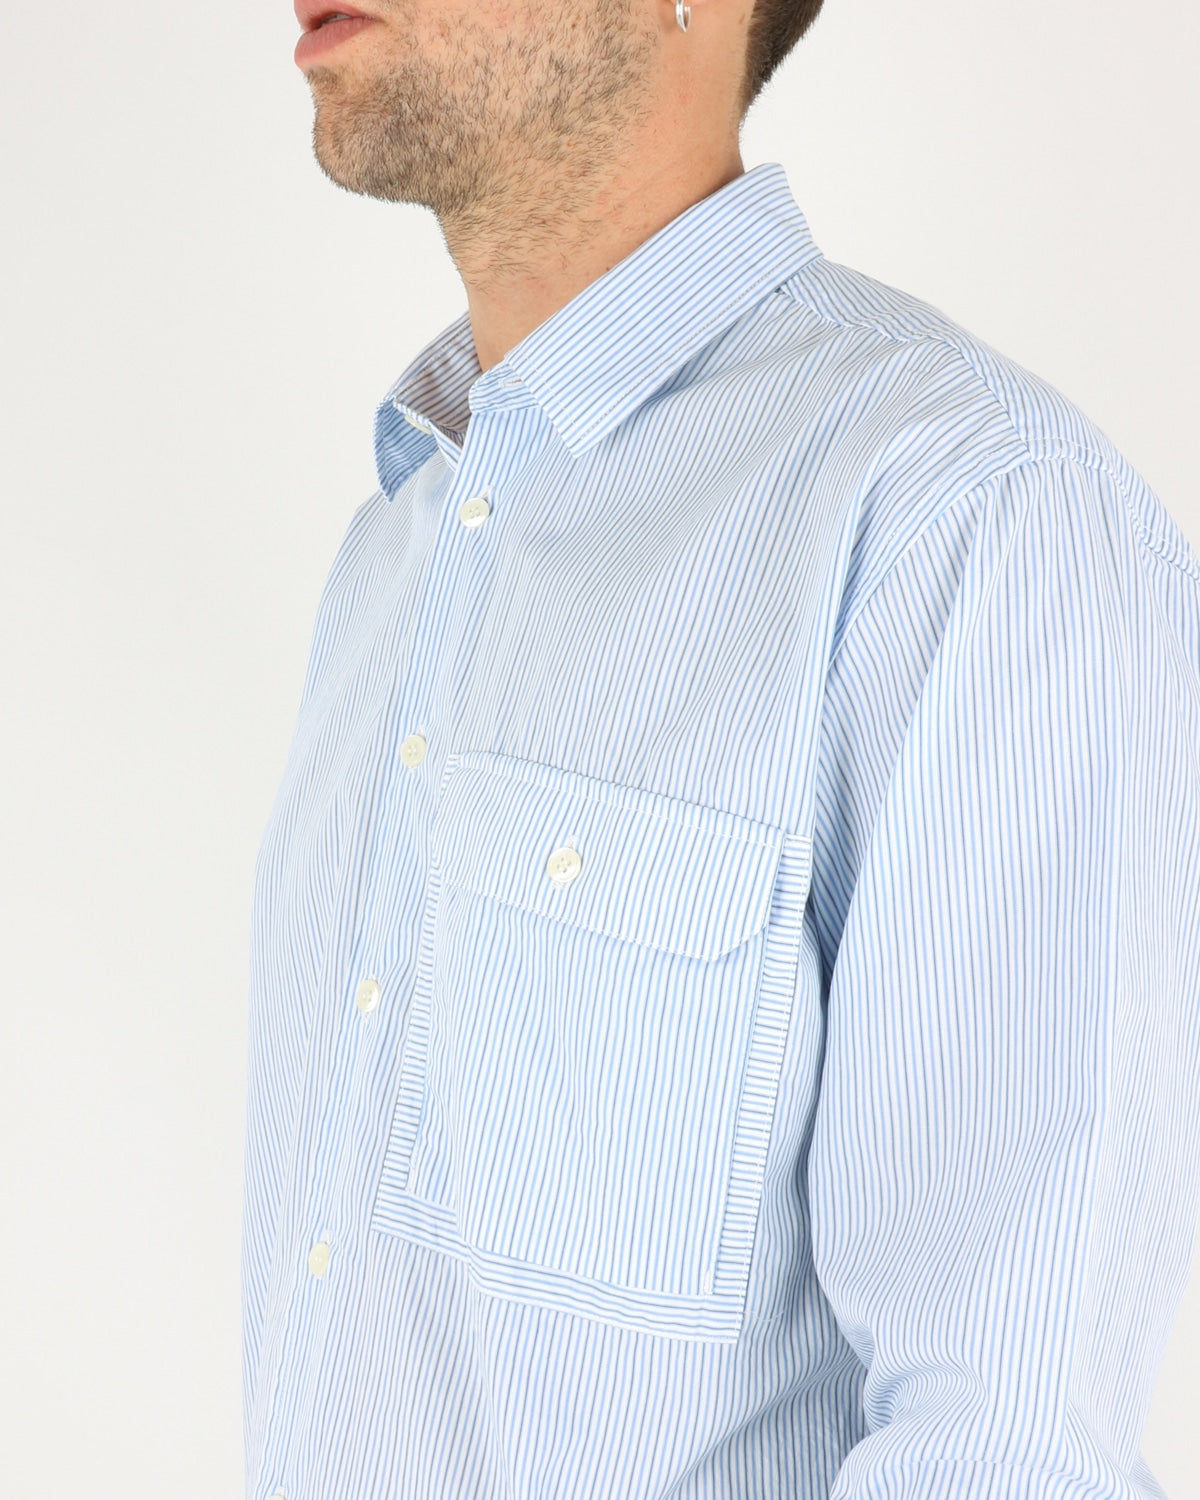 soulland_noel shirt_striped_3_3